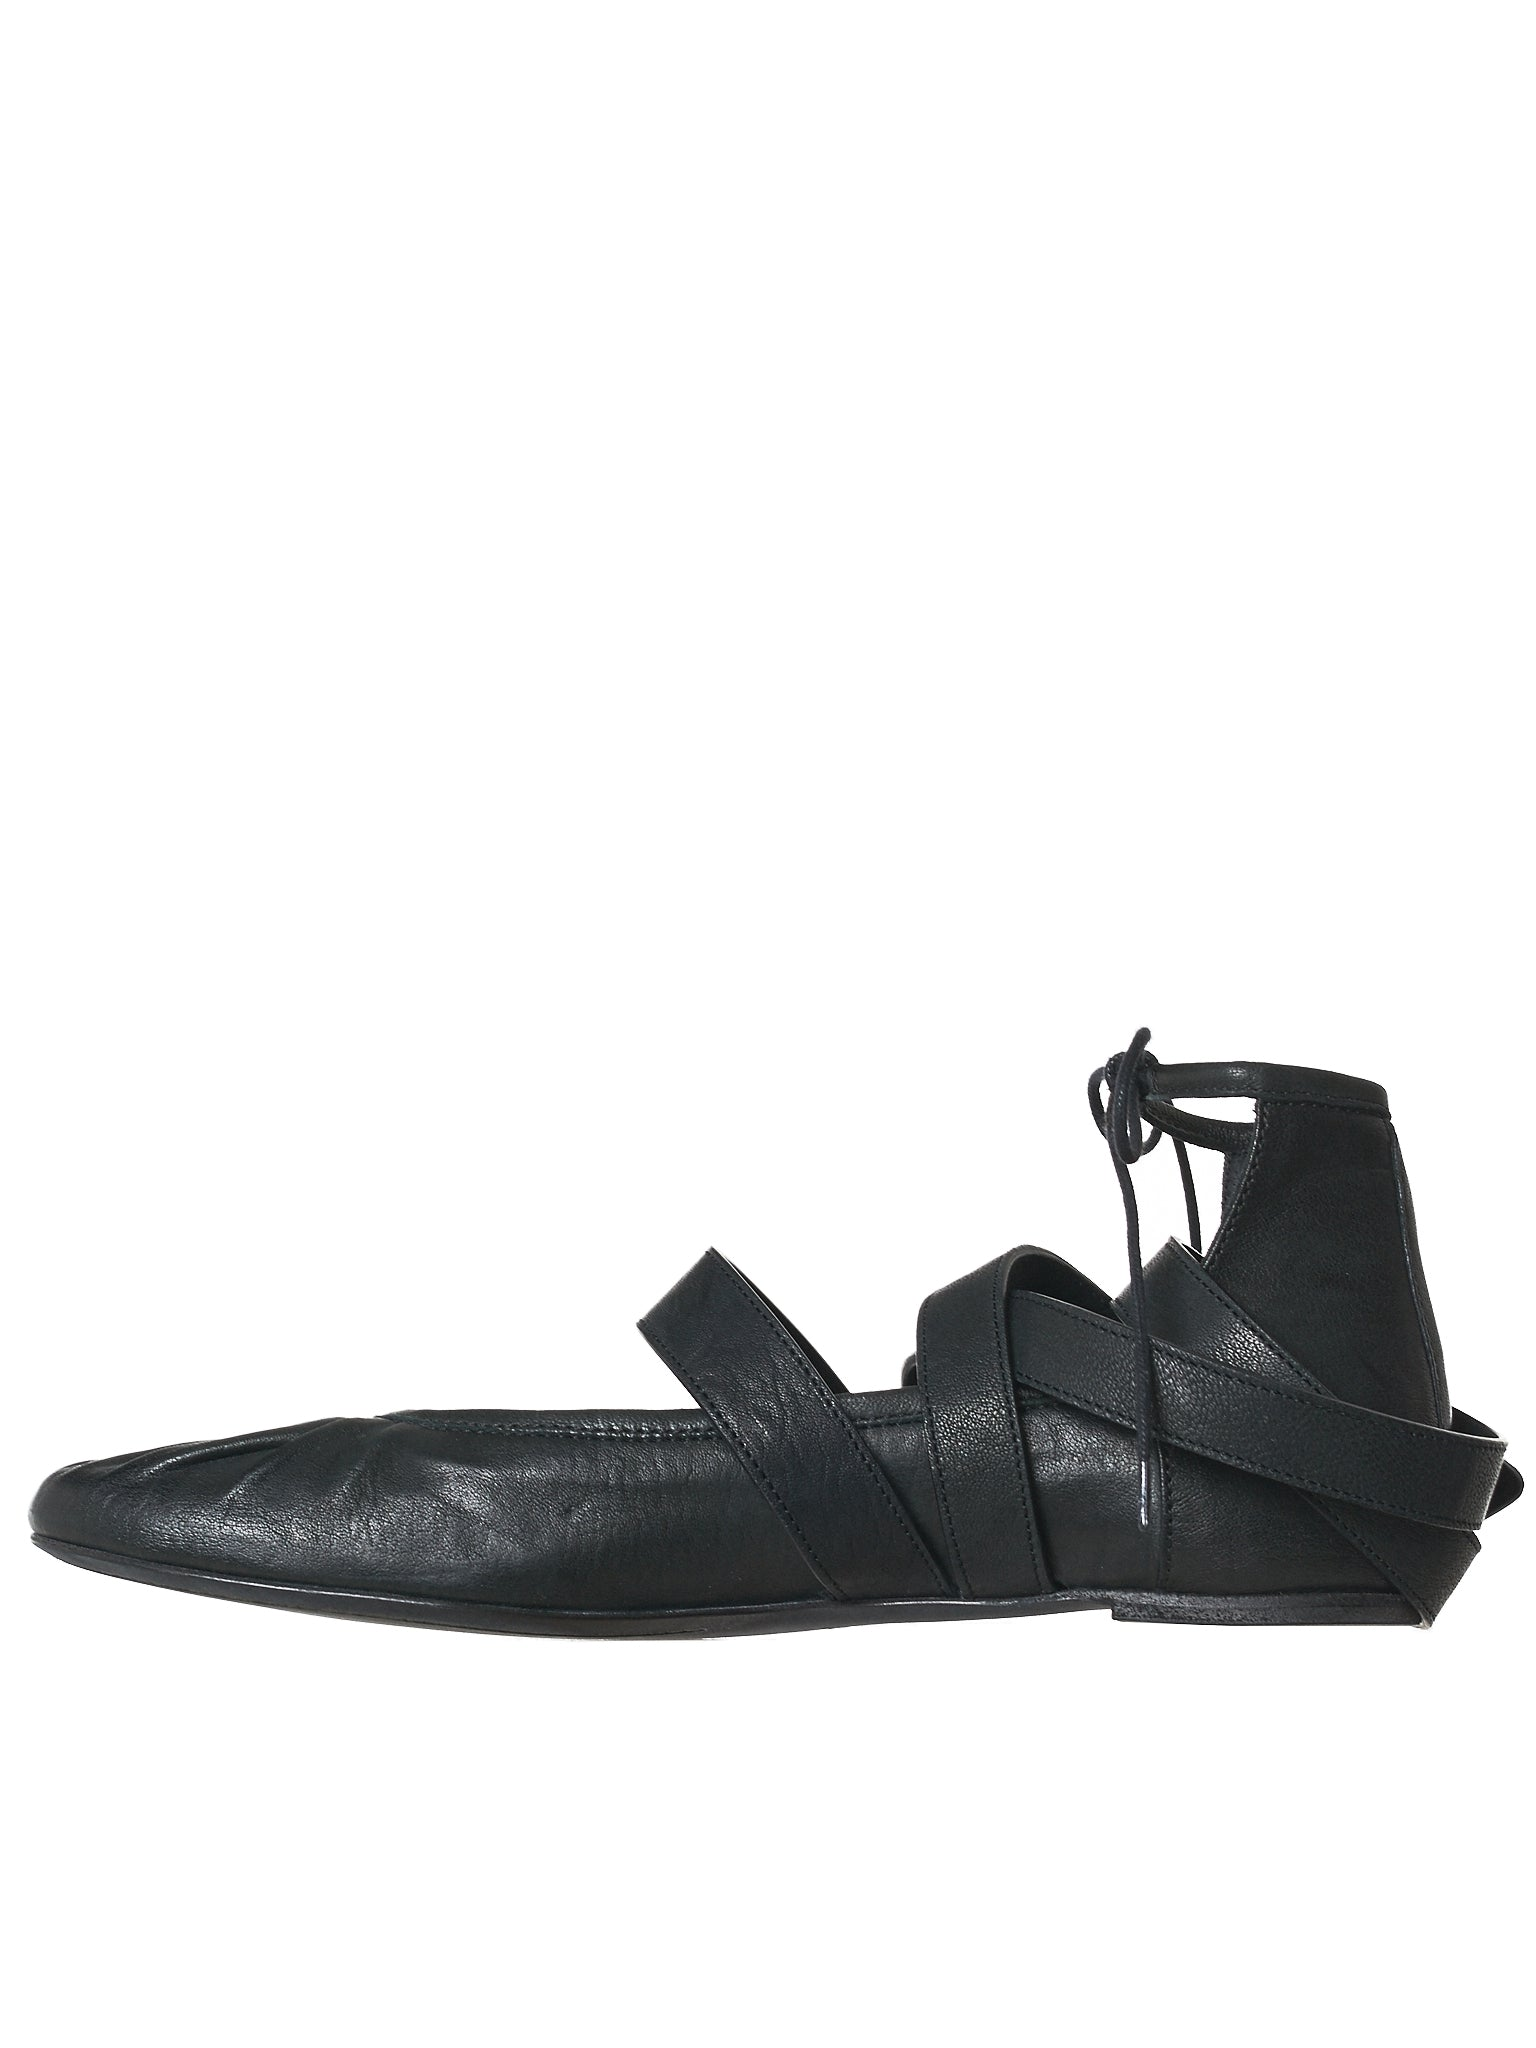 Ann Demeulemeester Leather Flats - Hlorenzo Back